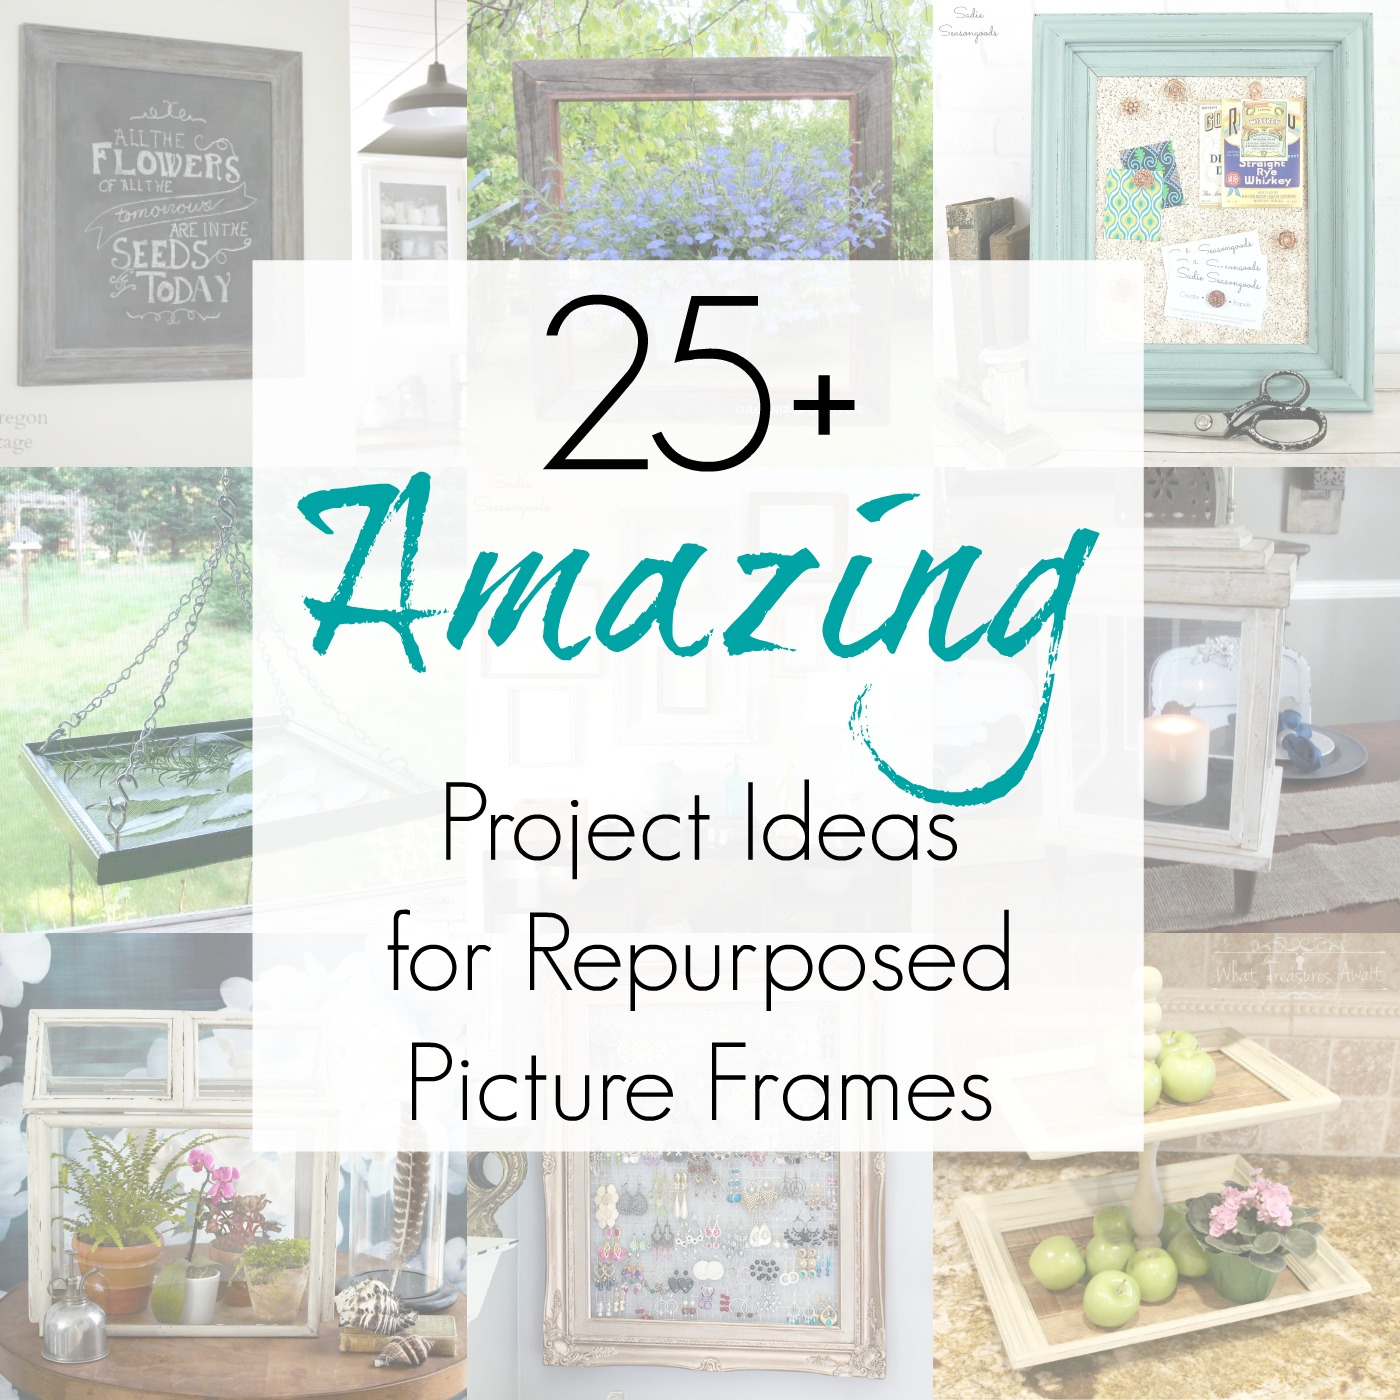 Repurposed projects and upcycling ideas for antique frames, vintage picture frames, and cheap frames as compiled by Sadie Seasongoods